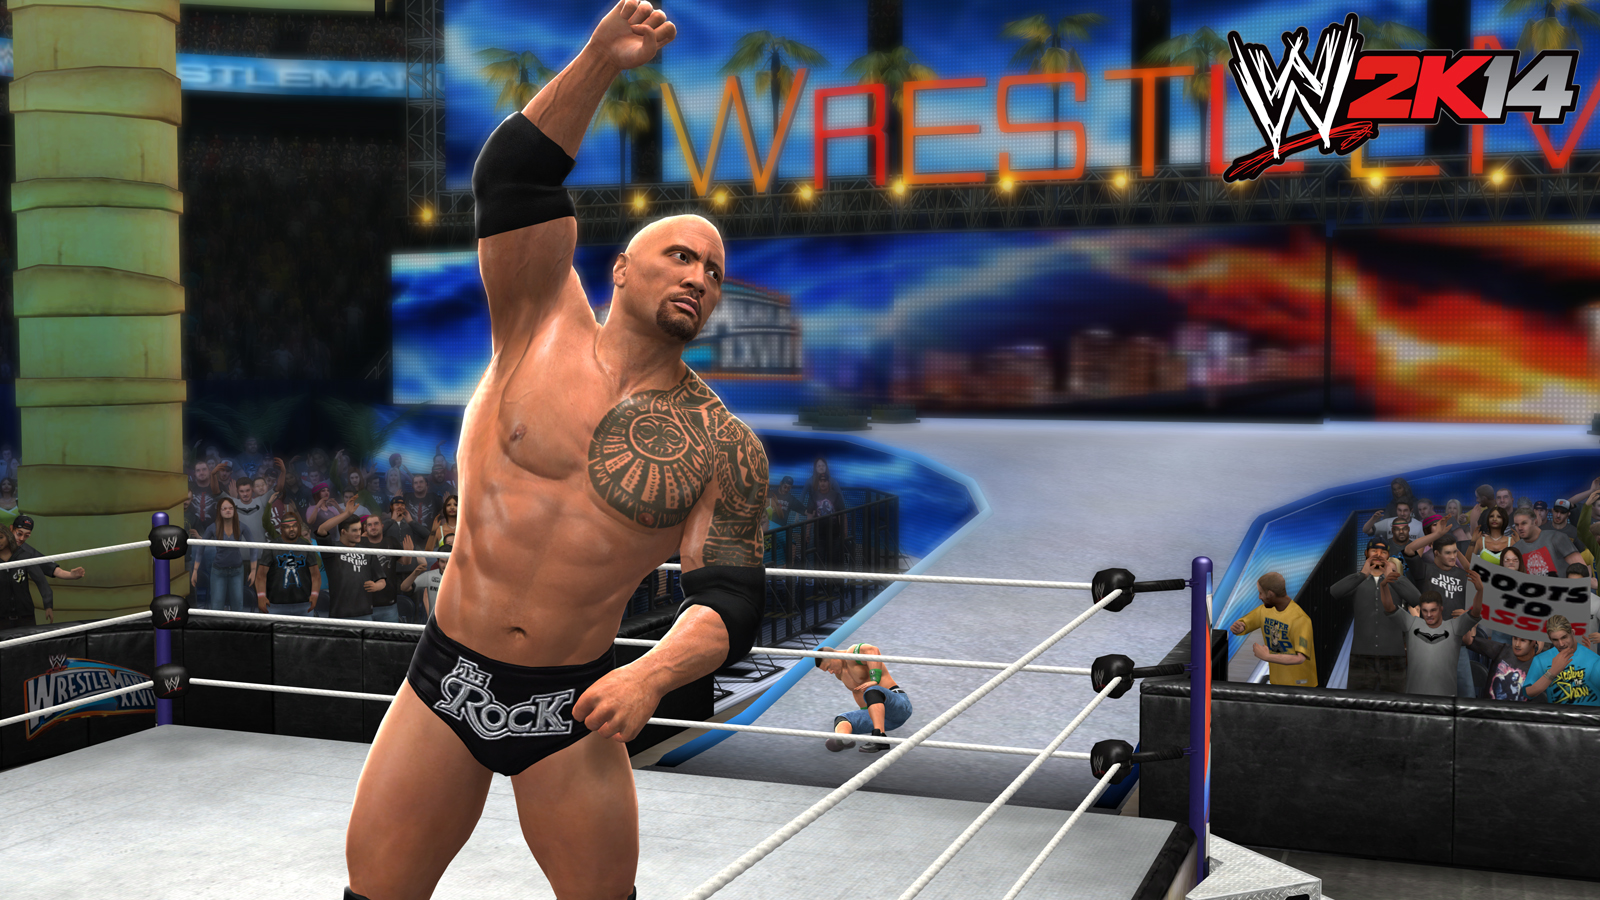 Universe Era' closes WWE 2K14's 30 Years of WrestleMania mode - Polygon